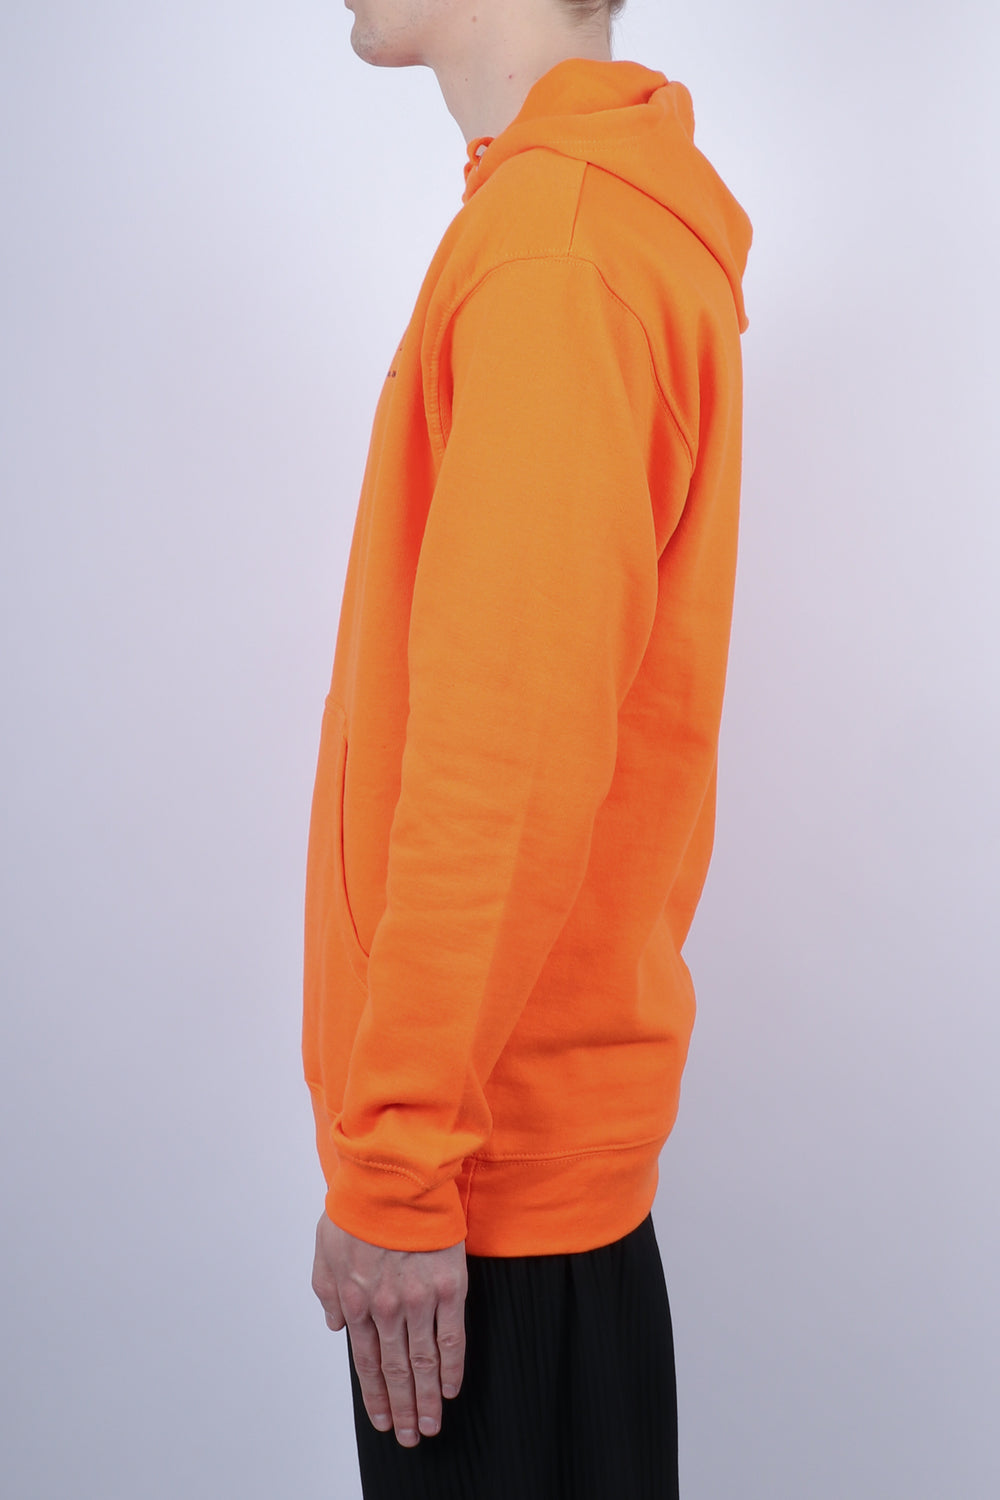 CNTRBND TORONTO City Hoodie In Orange